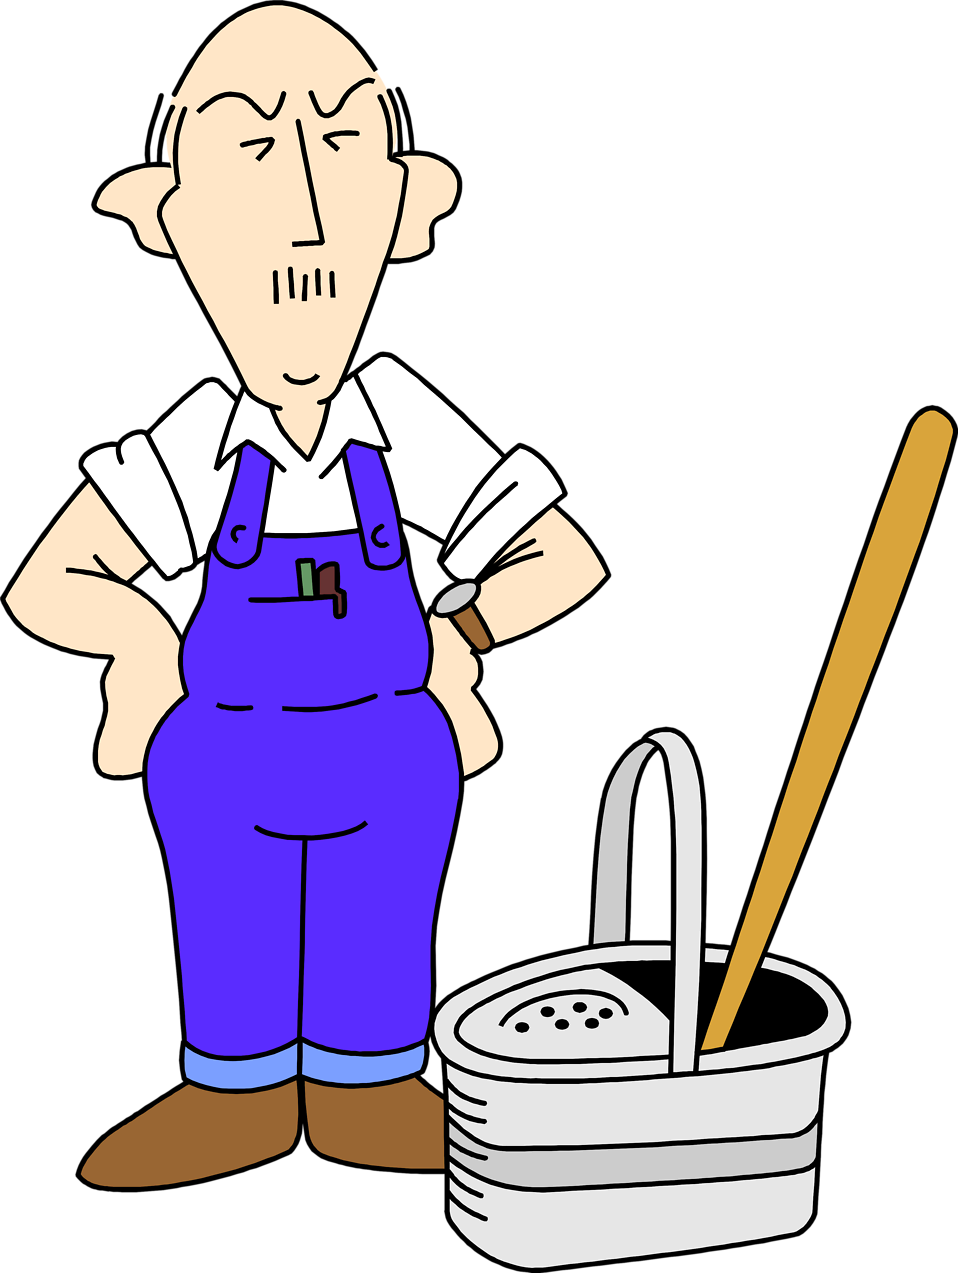 Janitor clipart kid. Cleaning both genders